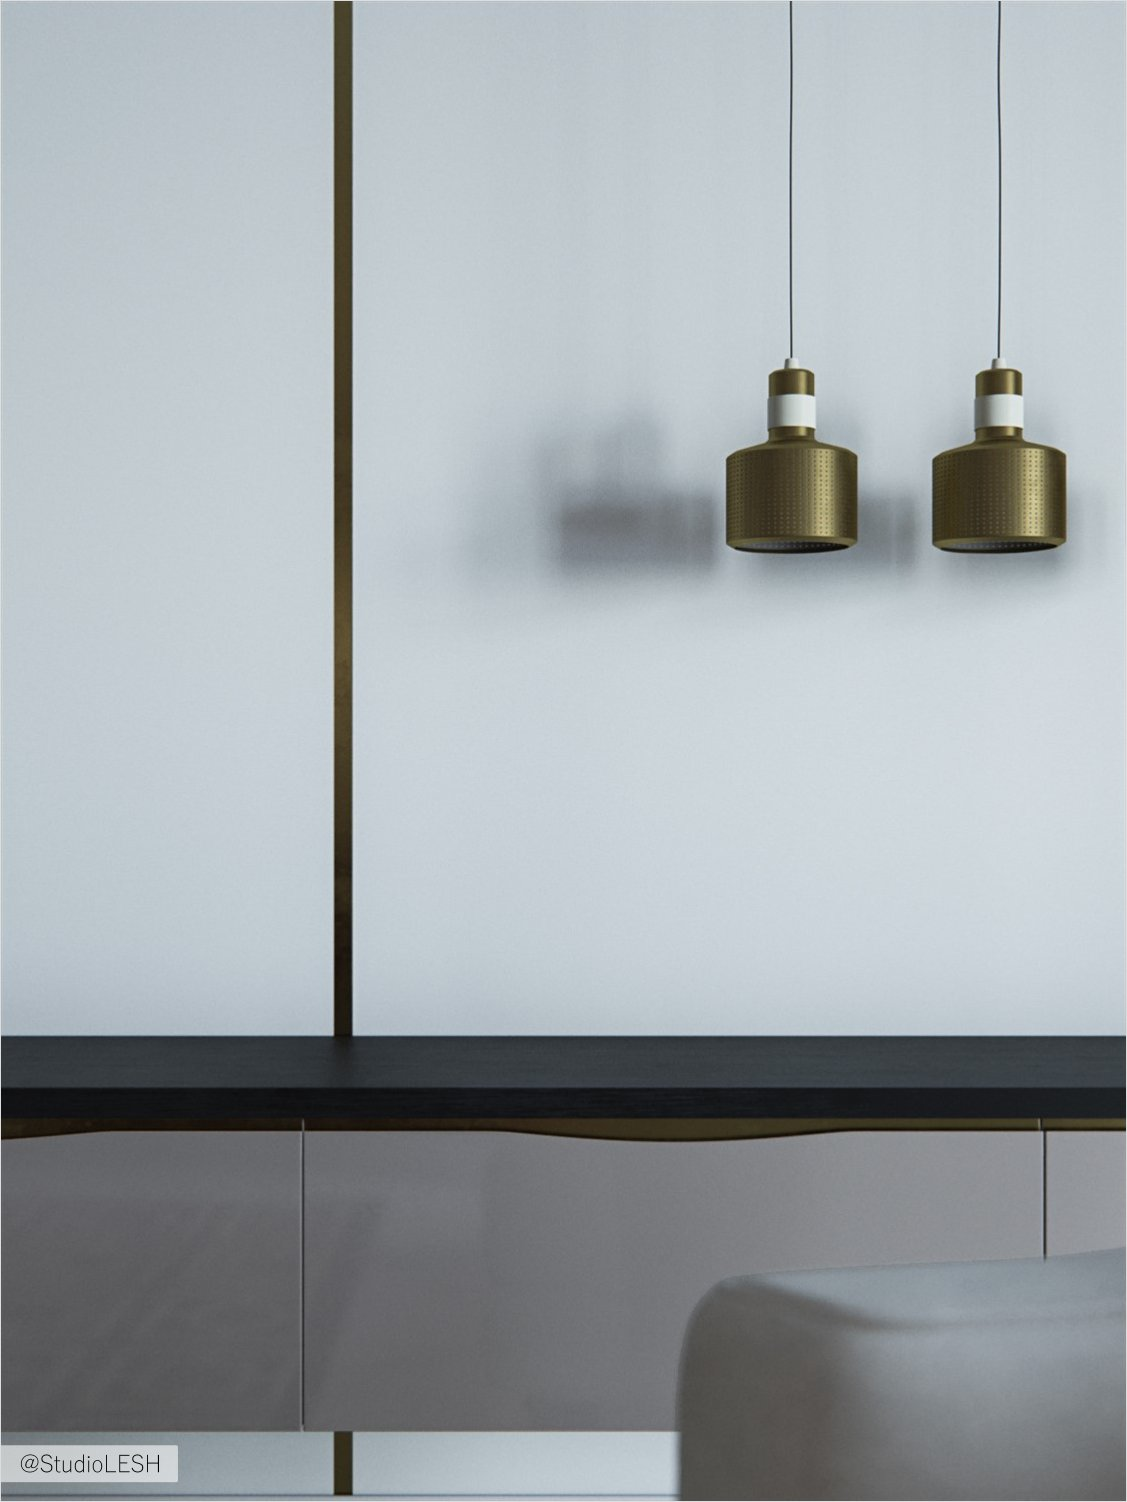 Designer light and hanging drawers with designer chairs